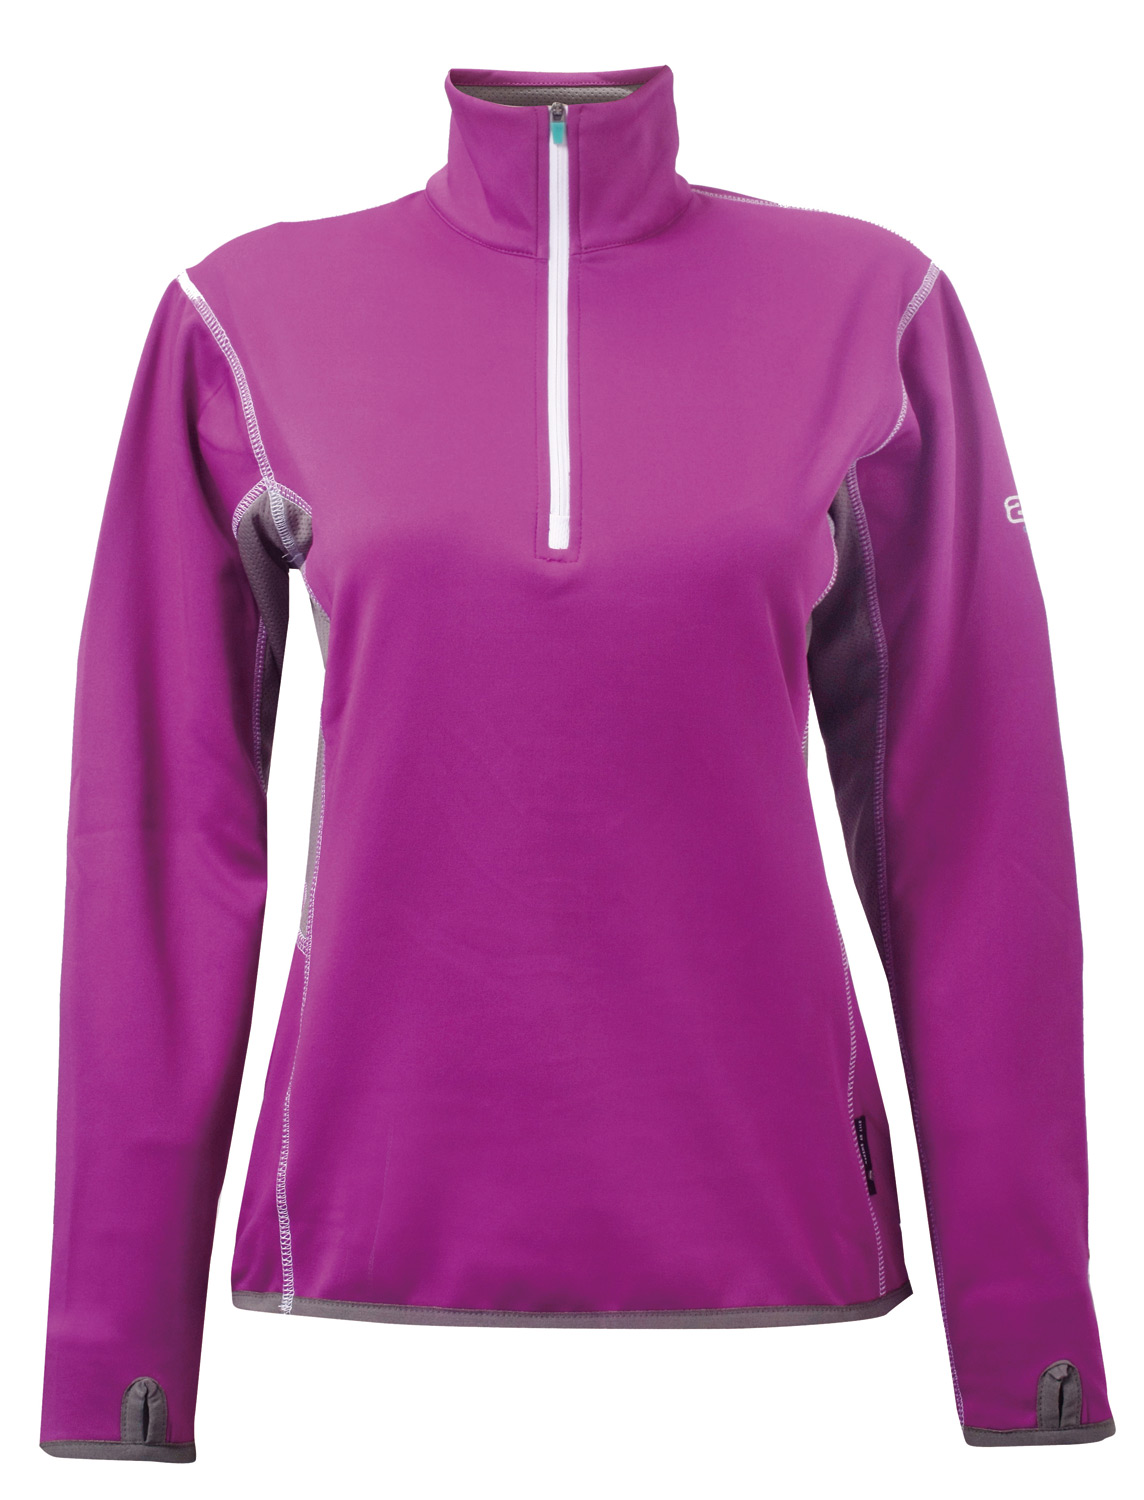 Golf Indoors and outdoors you will be perfectly outfitted in the Gotland 1/4 zip fleece top. This 4-way stretch anti-pilling top has the perfect amount of insulation and breathability to keep you comfortable whether you are being active or not and has a few comfort features like long sleeves with thumb holes and soft, advanced wicking lining around the neck.Key Features of the 2117 Gotland Power 1/4 Zip Fleece: Powerfleece top with long sleeves and short zip Anit-pilling powerfleece 4-way stretch 1/2 zip Ventilation panels on key areas - $25.95